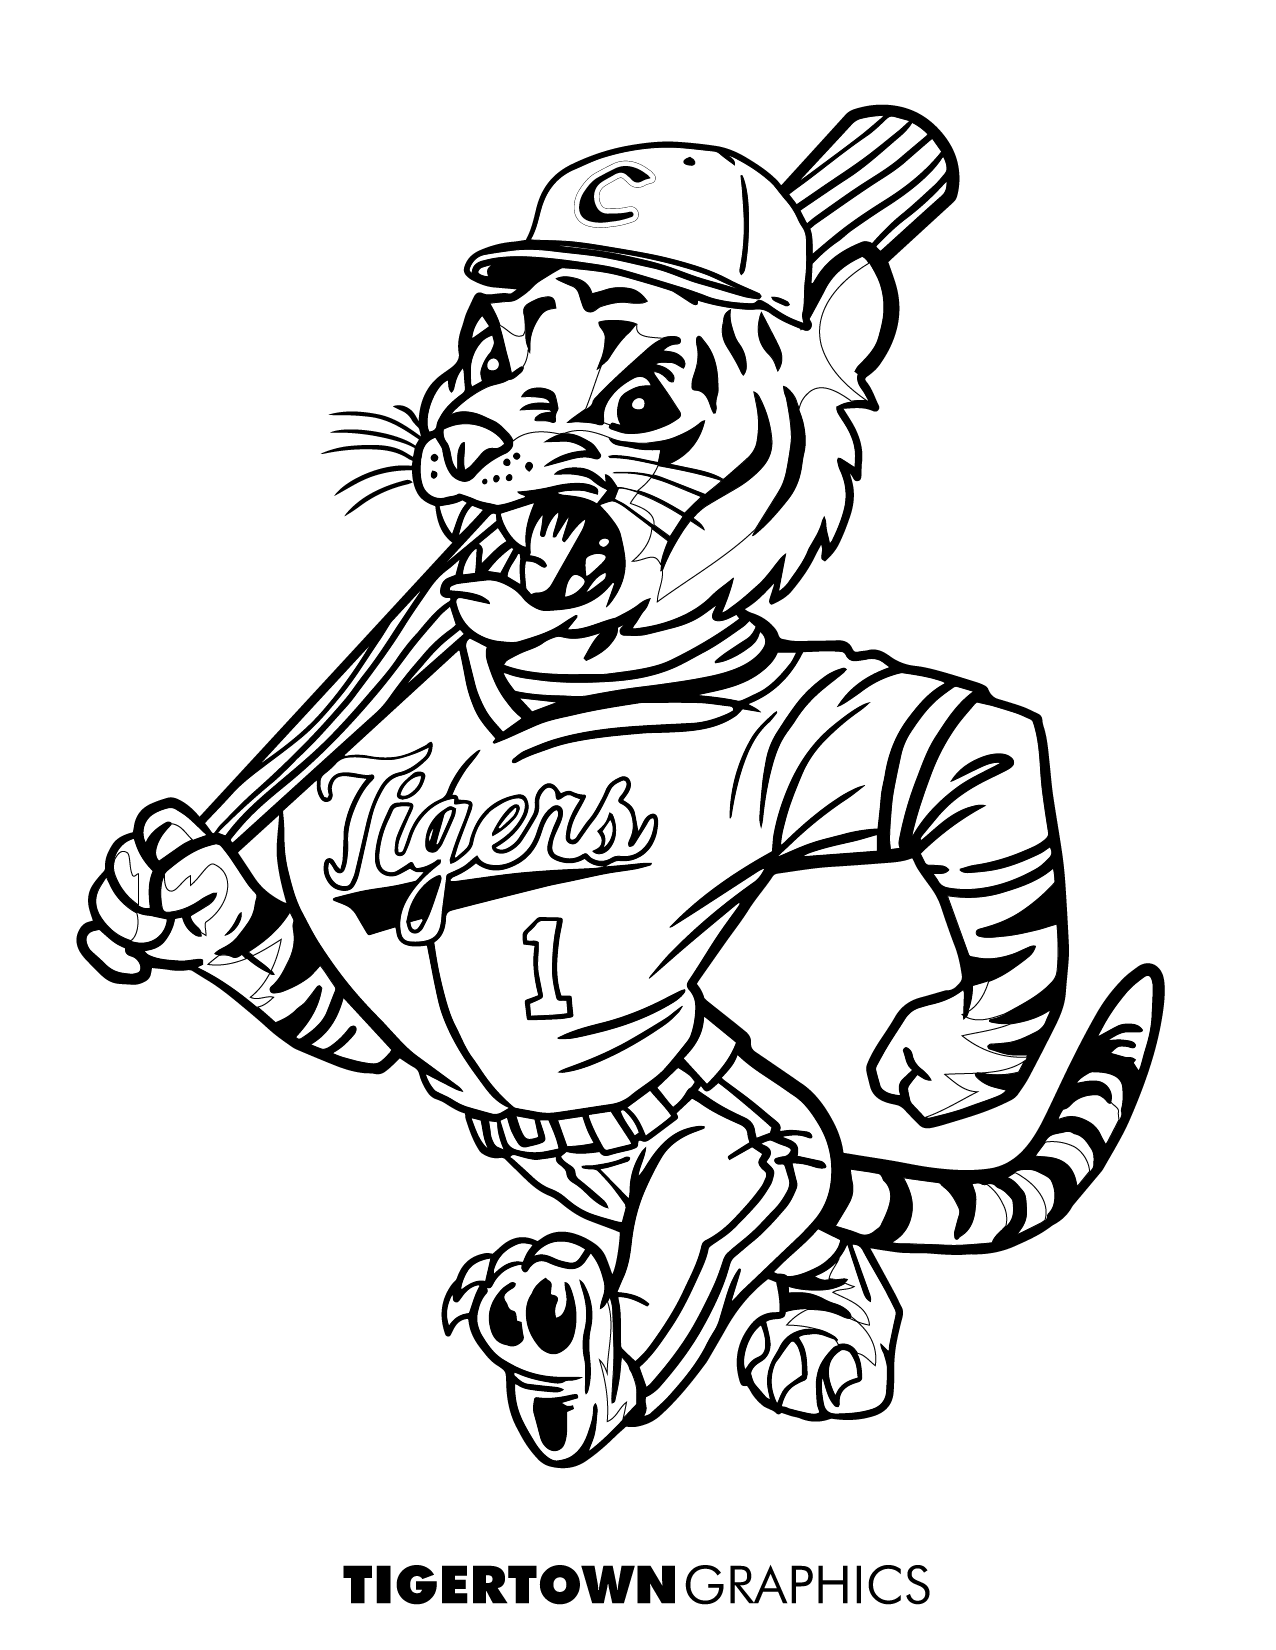 Graphics Tigertown - Coloring Pages!